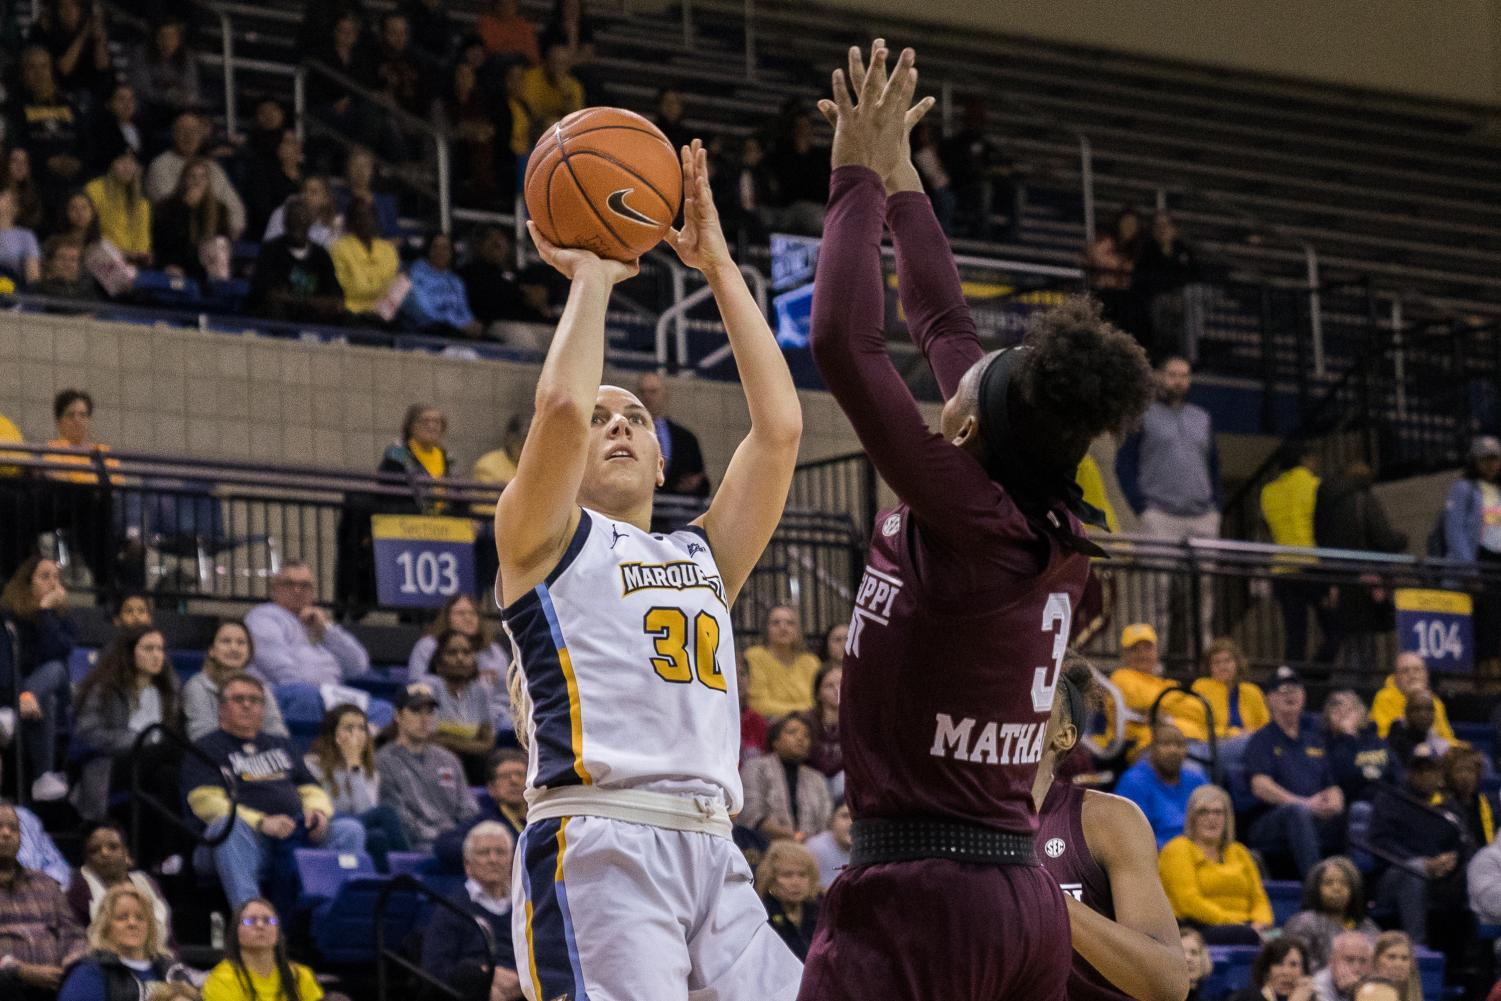 Senior guard Isabelle Spingola led the Golden Eagles with 18 points in their loss to No. 10 Mississippi State Nov. 25 at the Al McGuire Center.